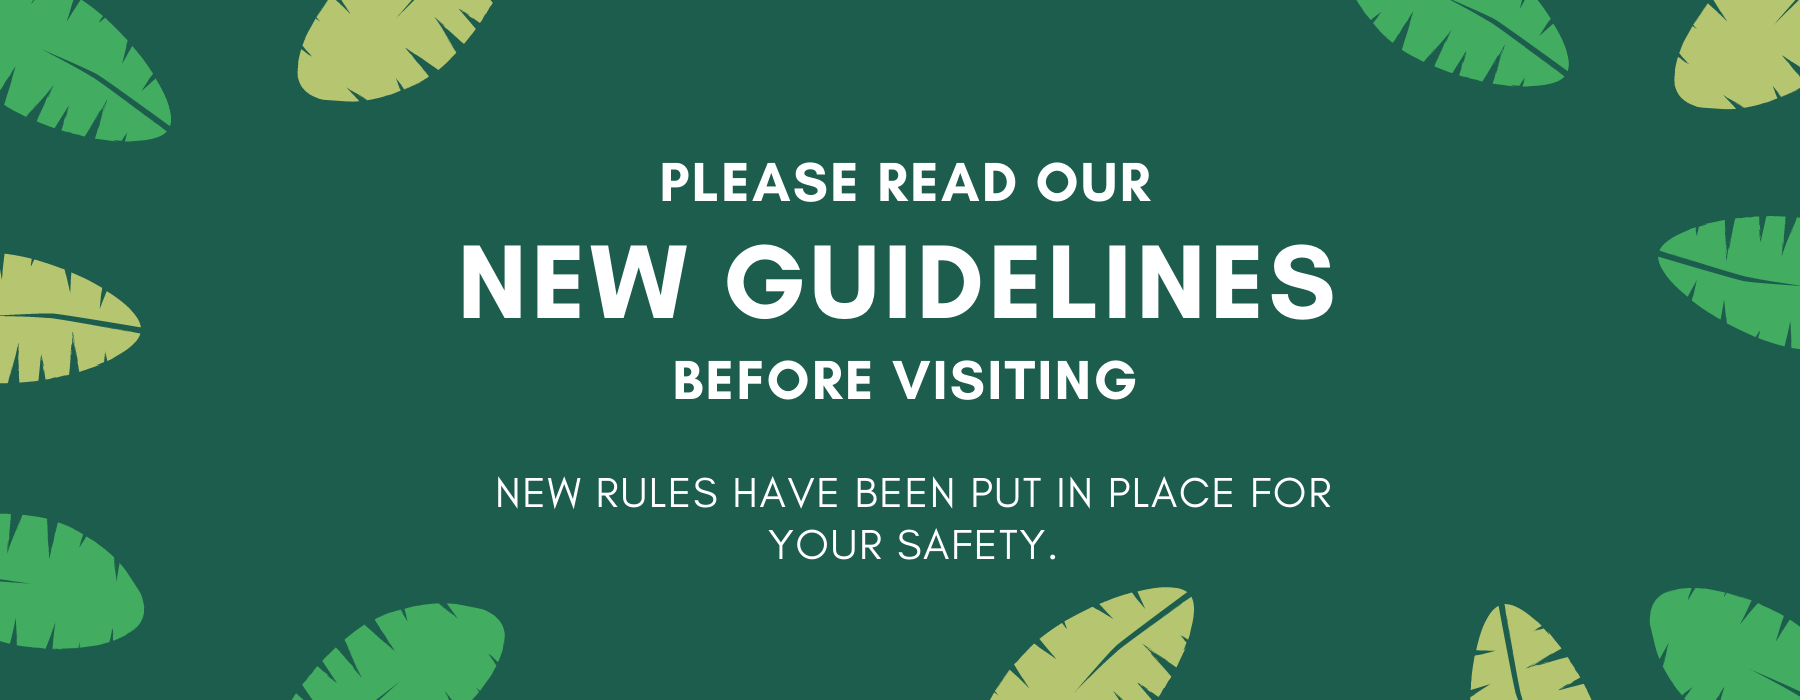 New guidelines PNG